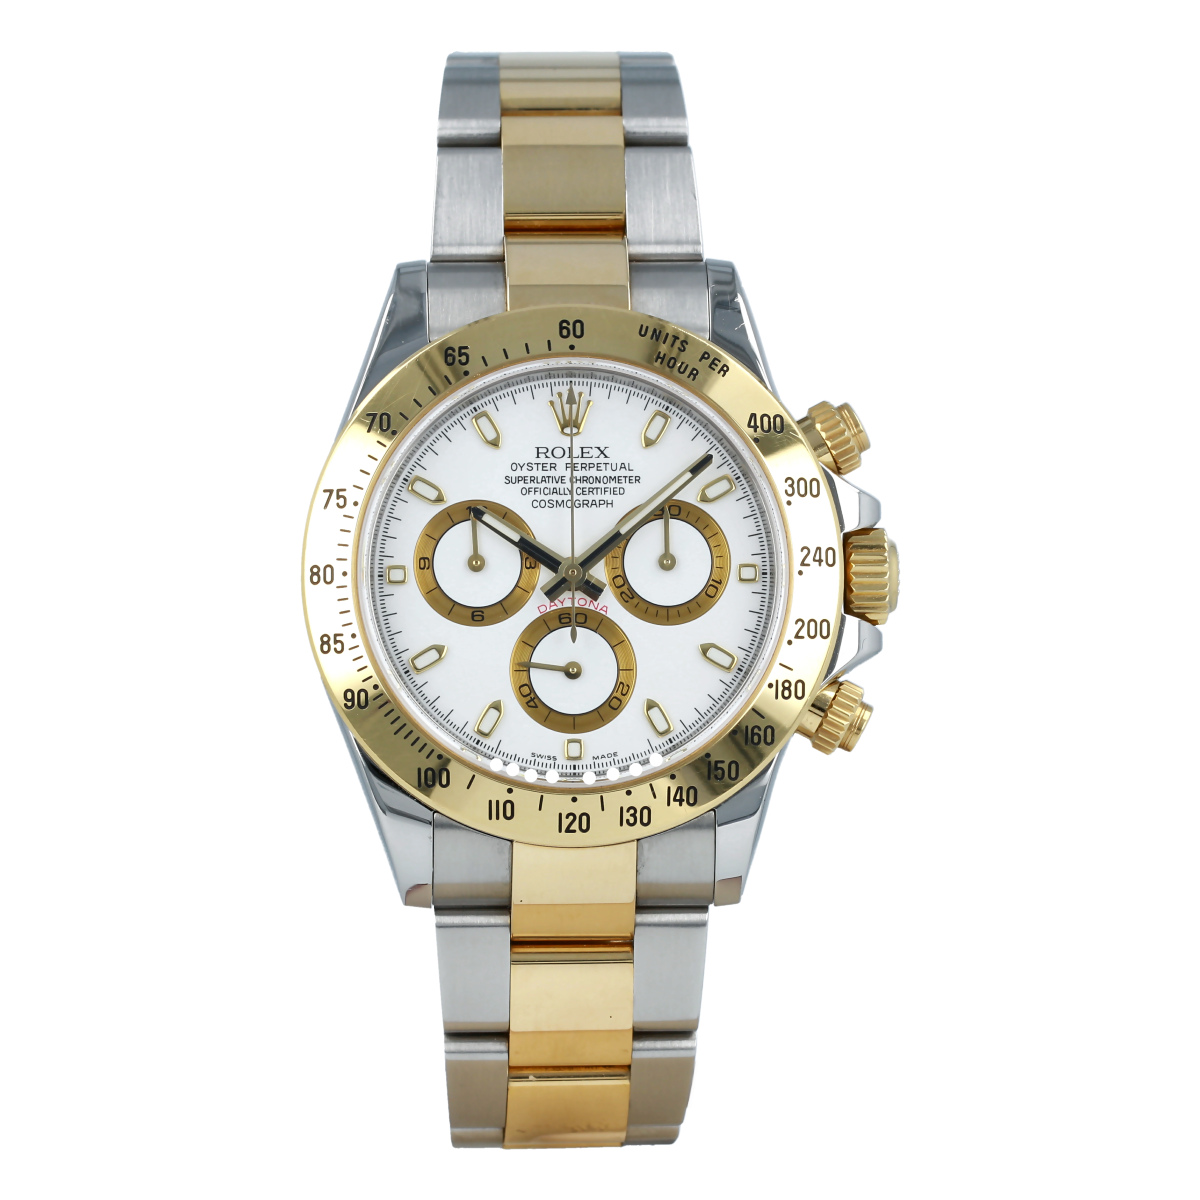 Rolex Cosmograph Daytona 116523 Steel and Yellow Gold *Full Set* | Buy pre-owned Rolex watch